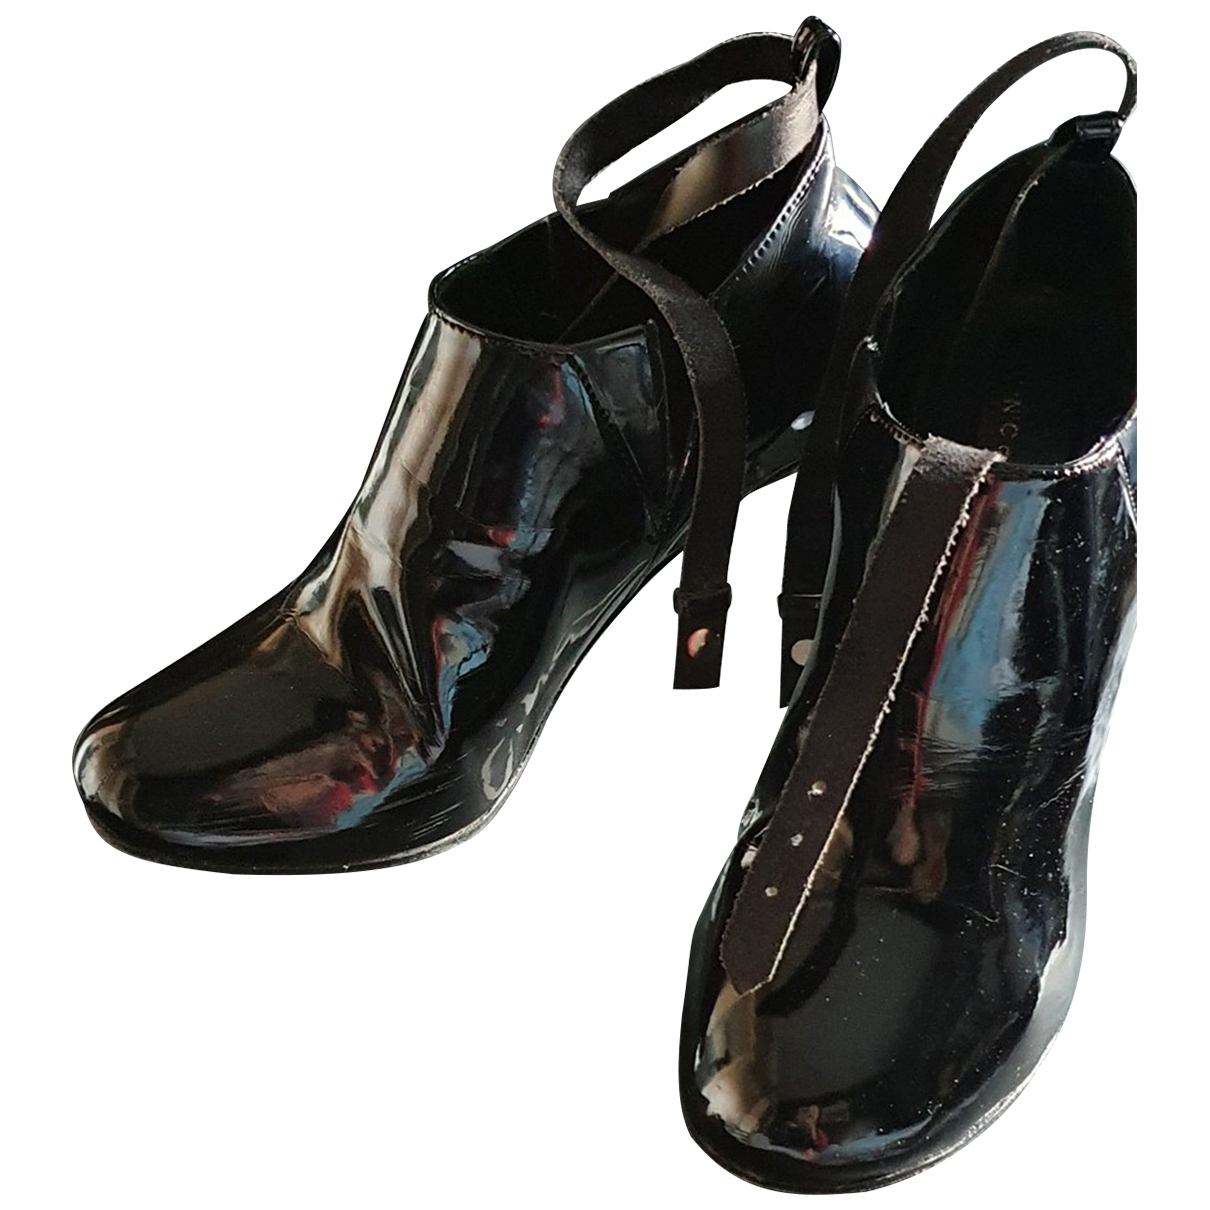 Cnc \N Black Patent leather Ankle boots for Women 37 EU